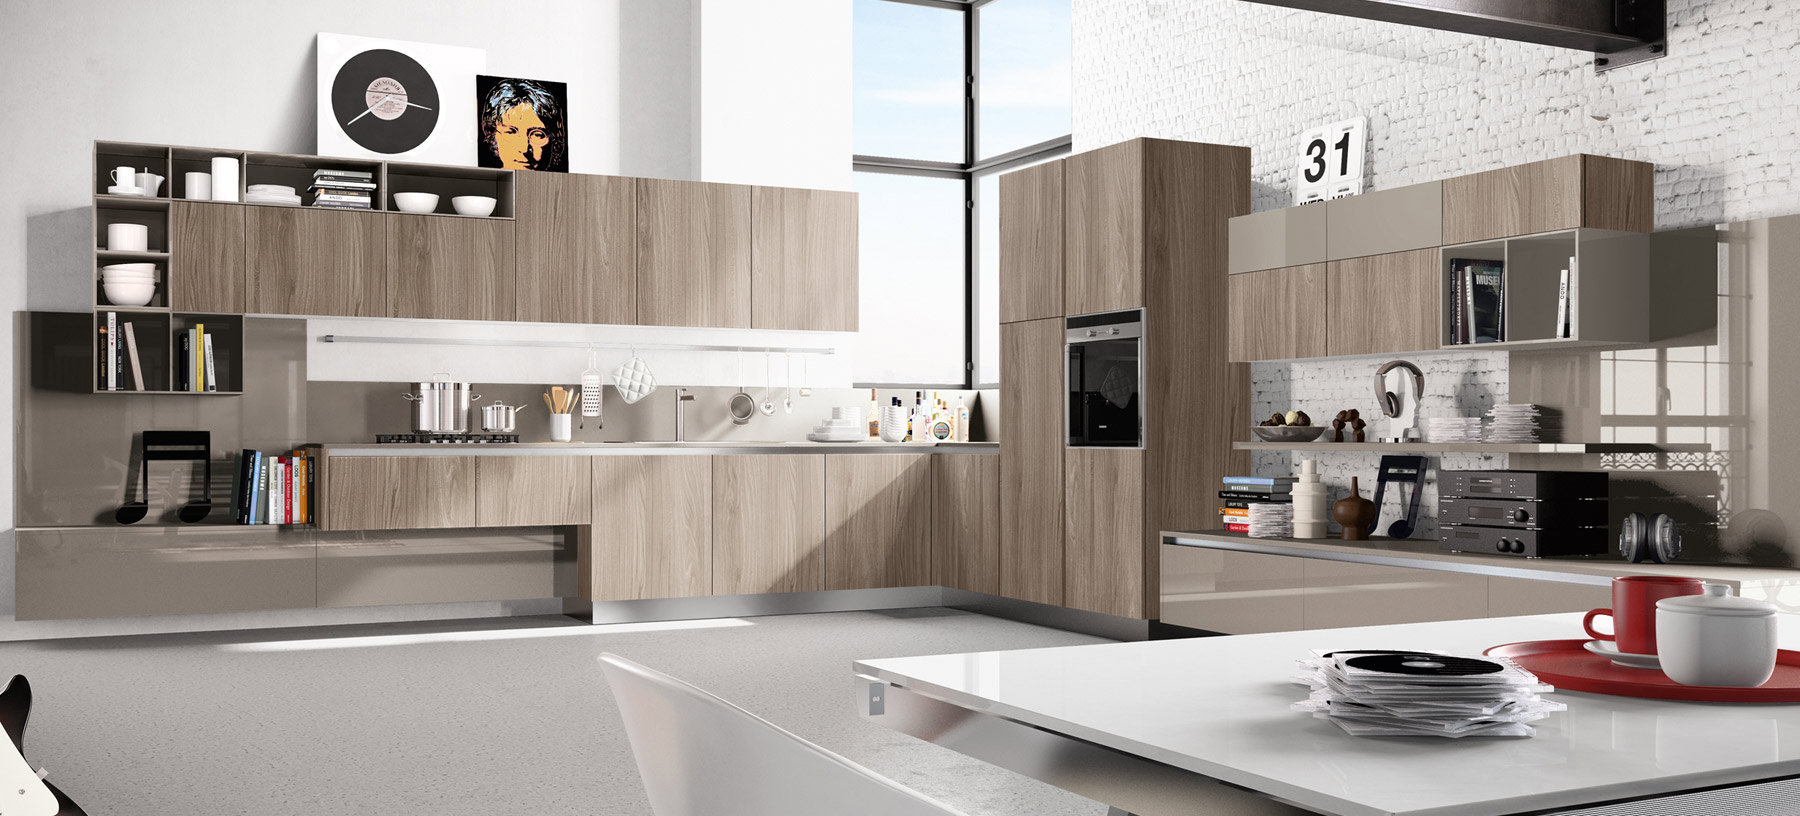 contemporary kitchen designs 2014 kitchen designs that pop 239